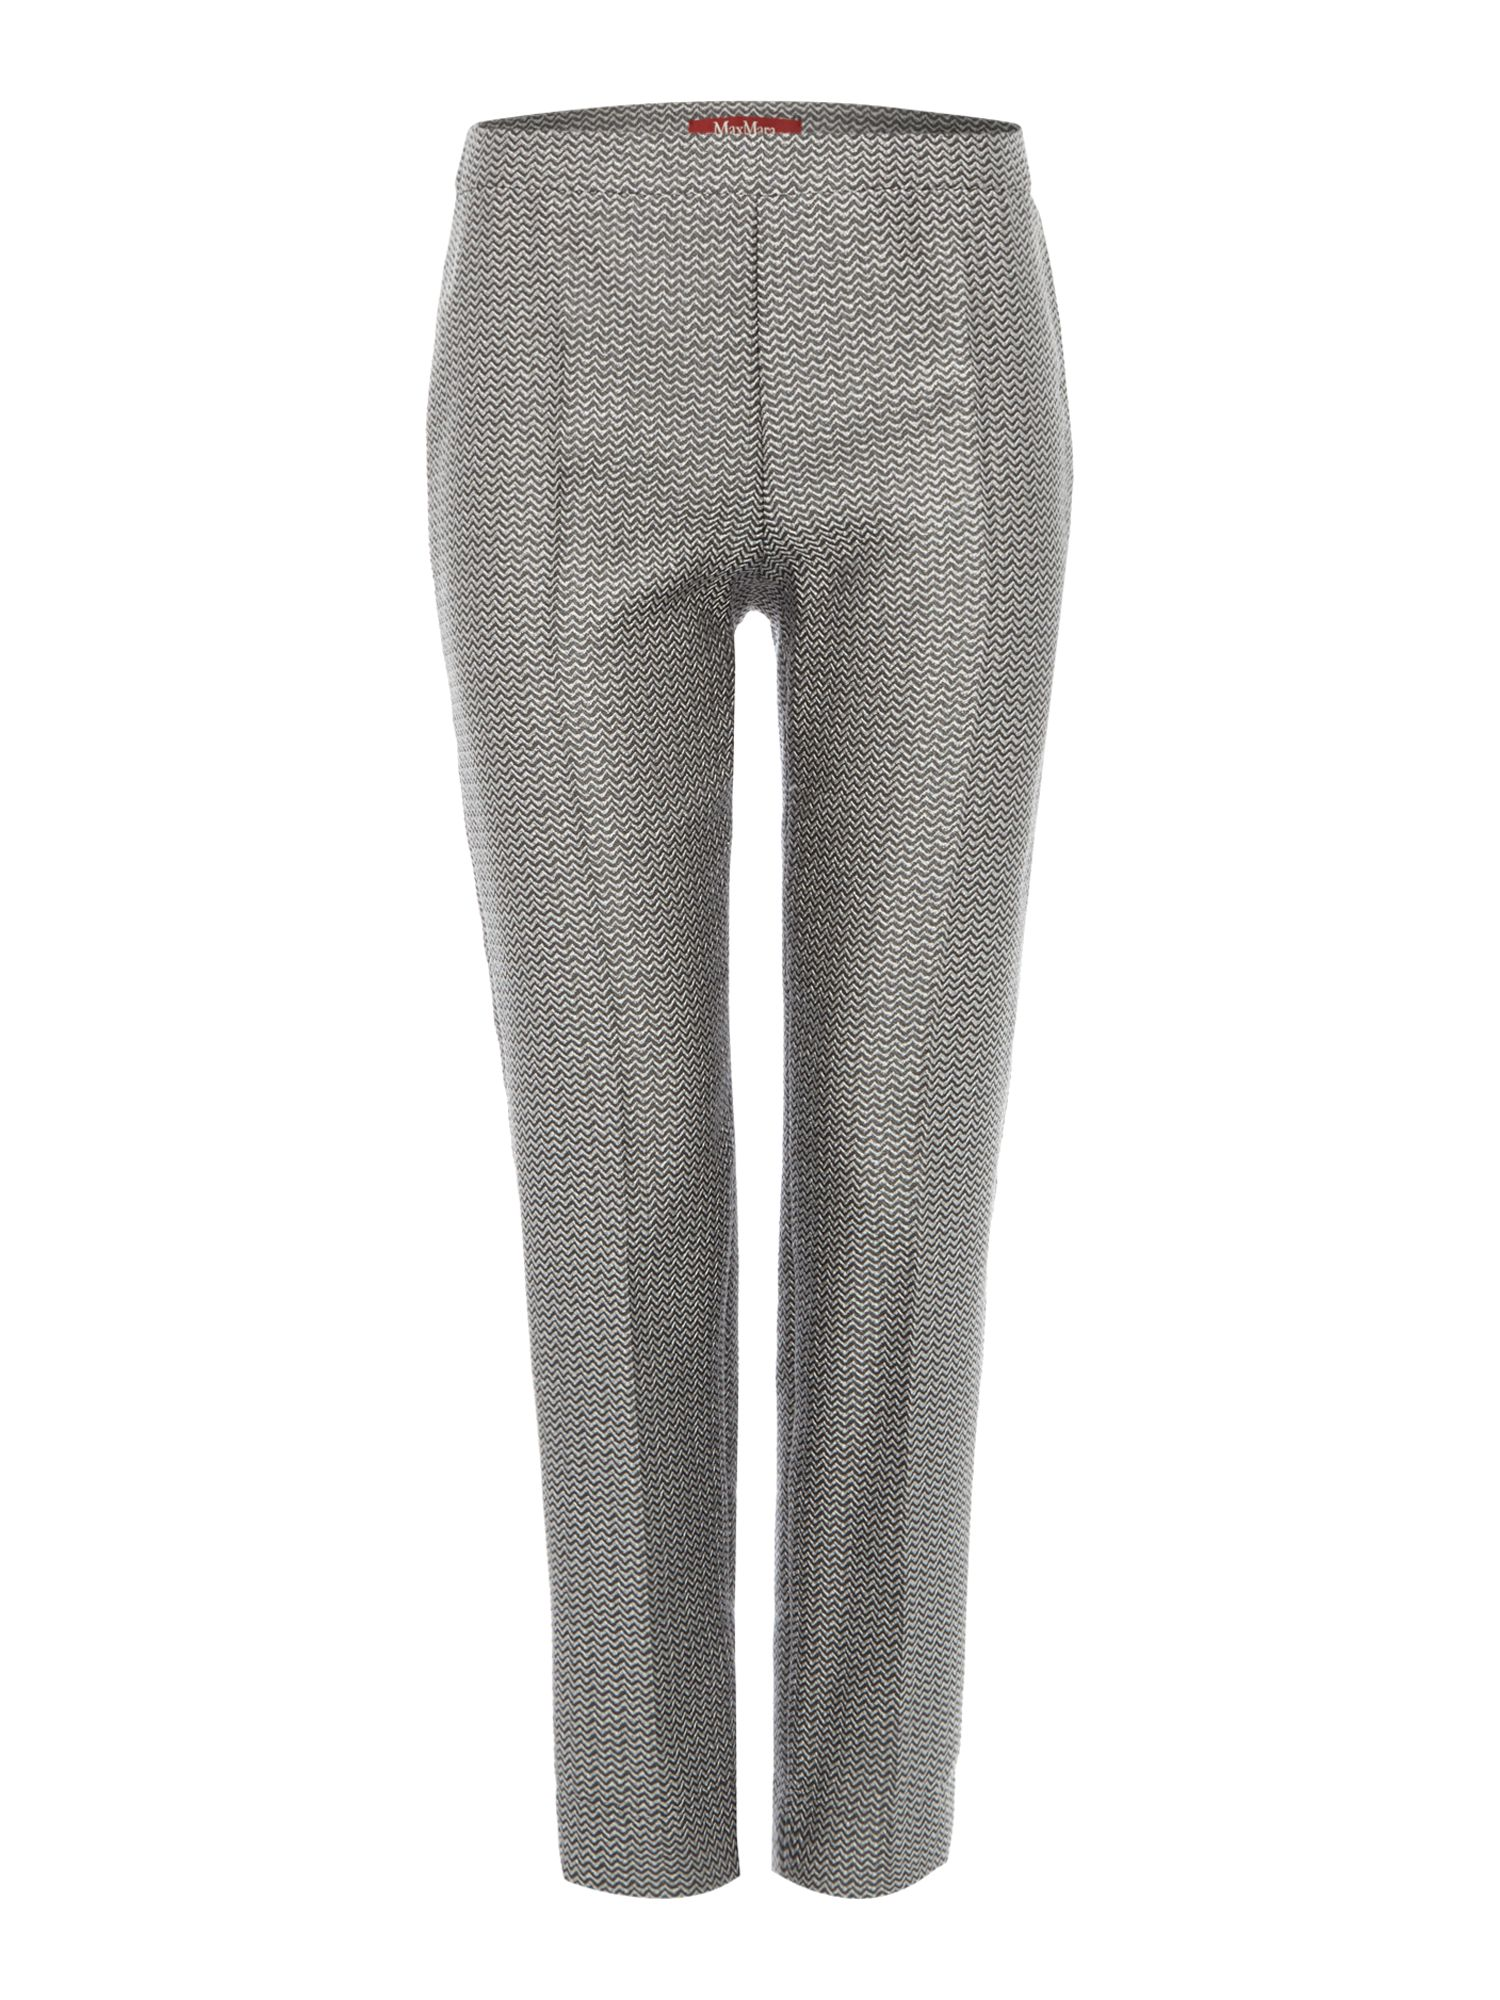 Cincin printed straight leg trouser